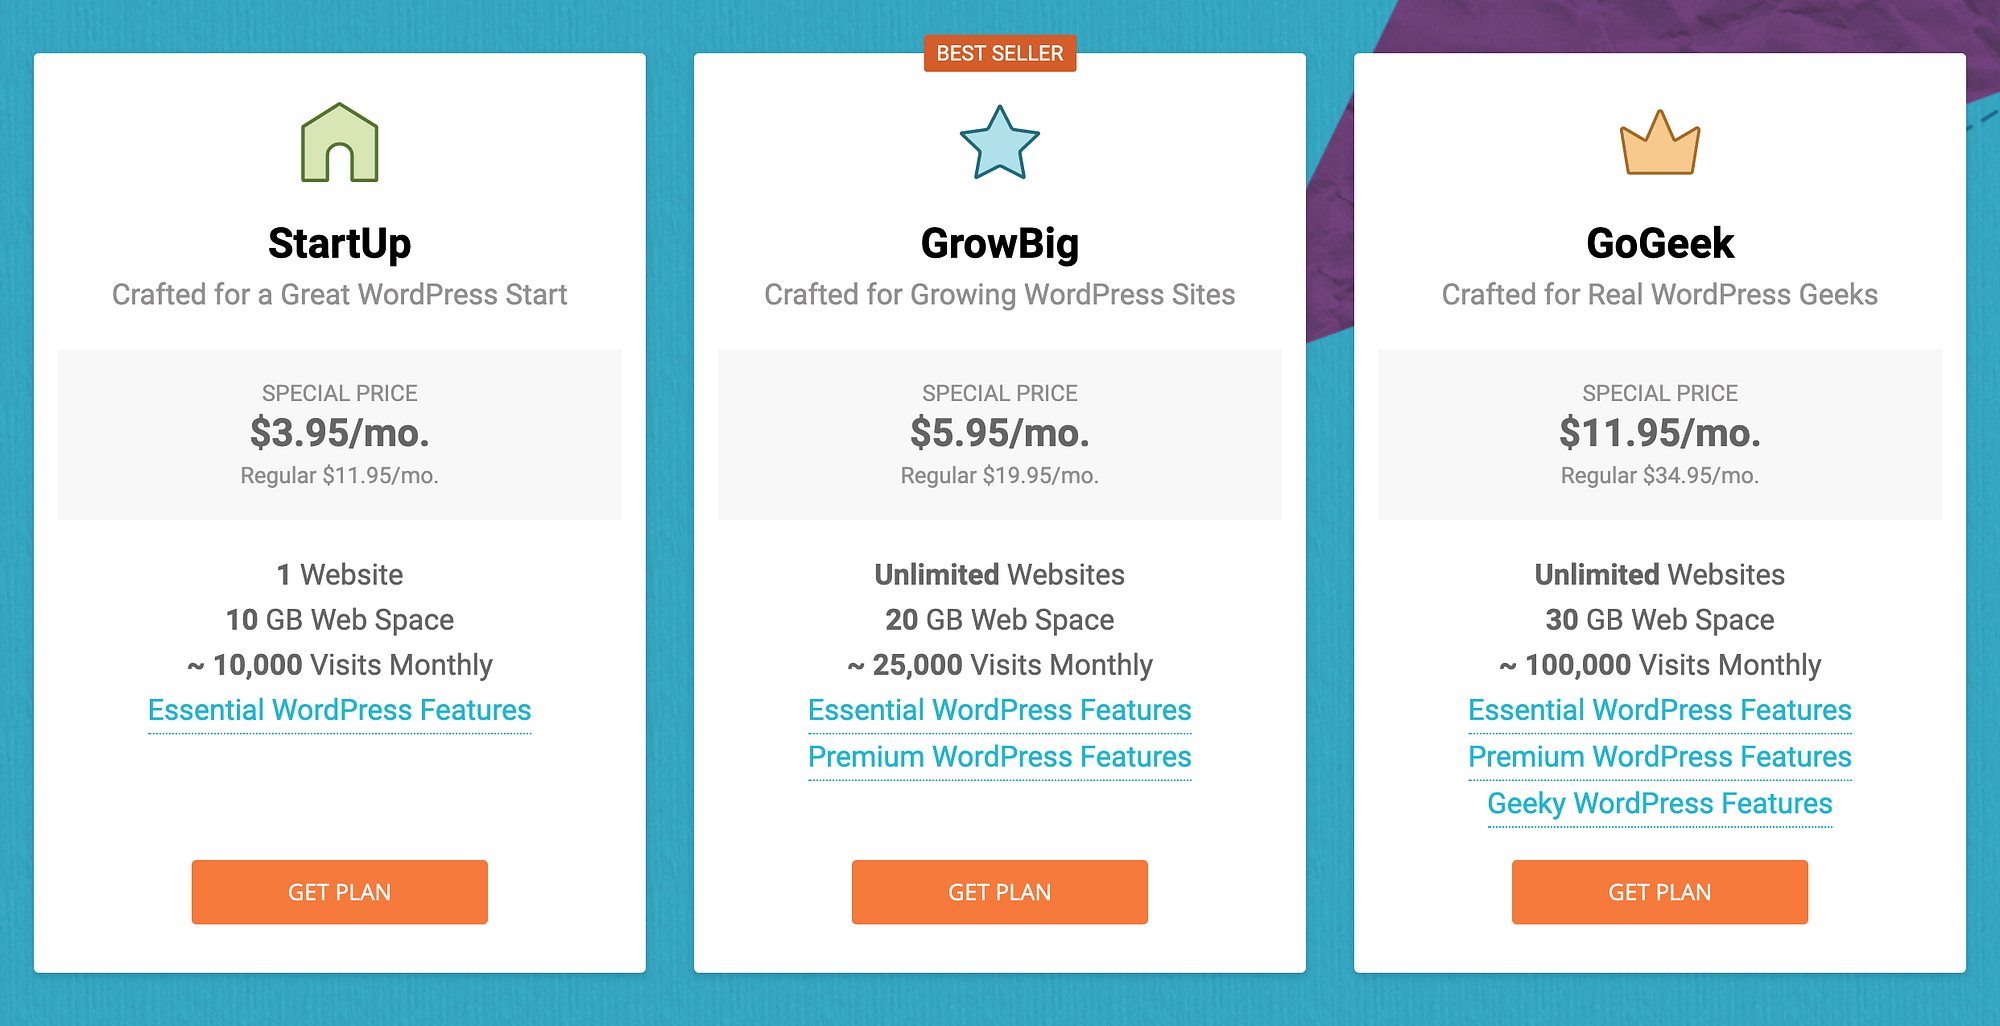 SiteGround pricing vs WP Engine